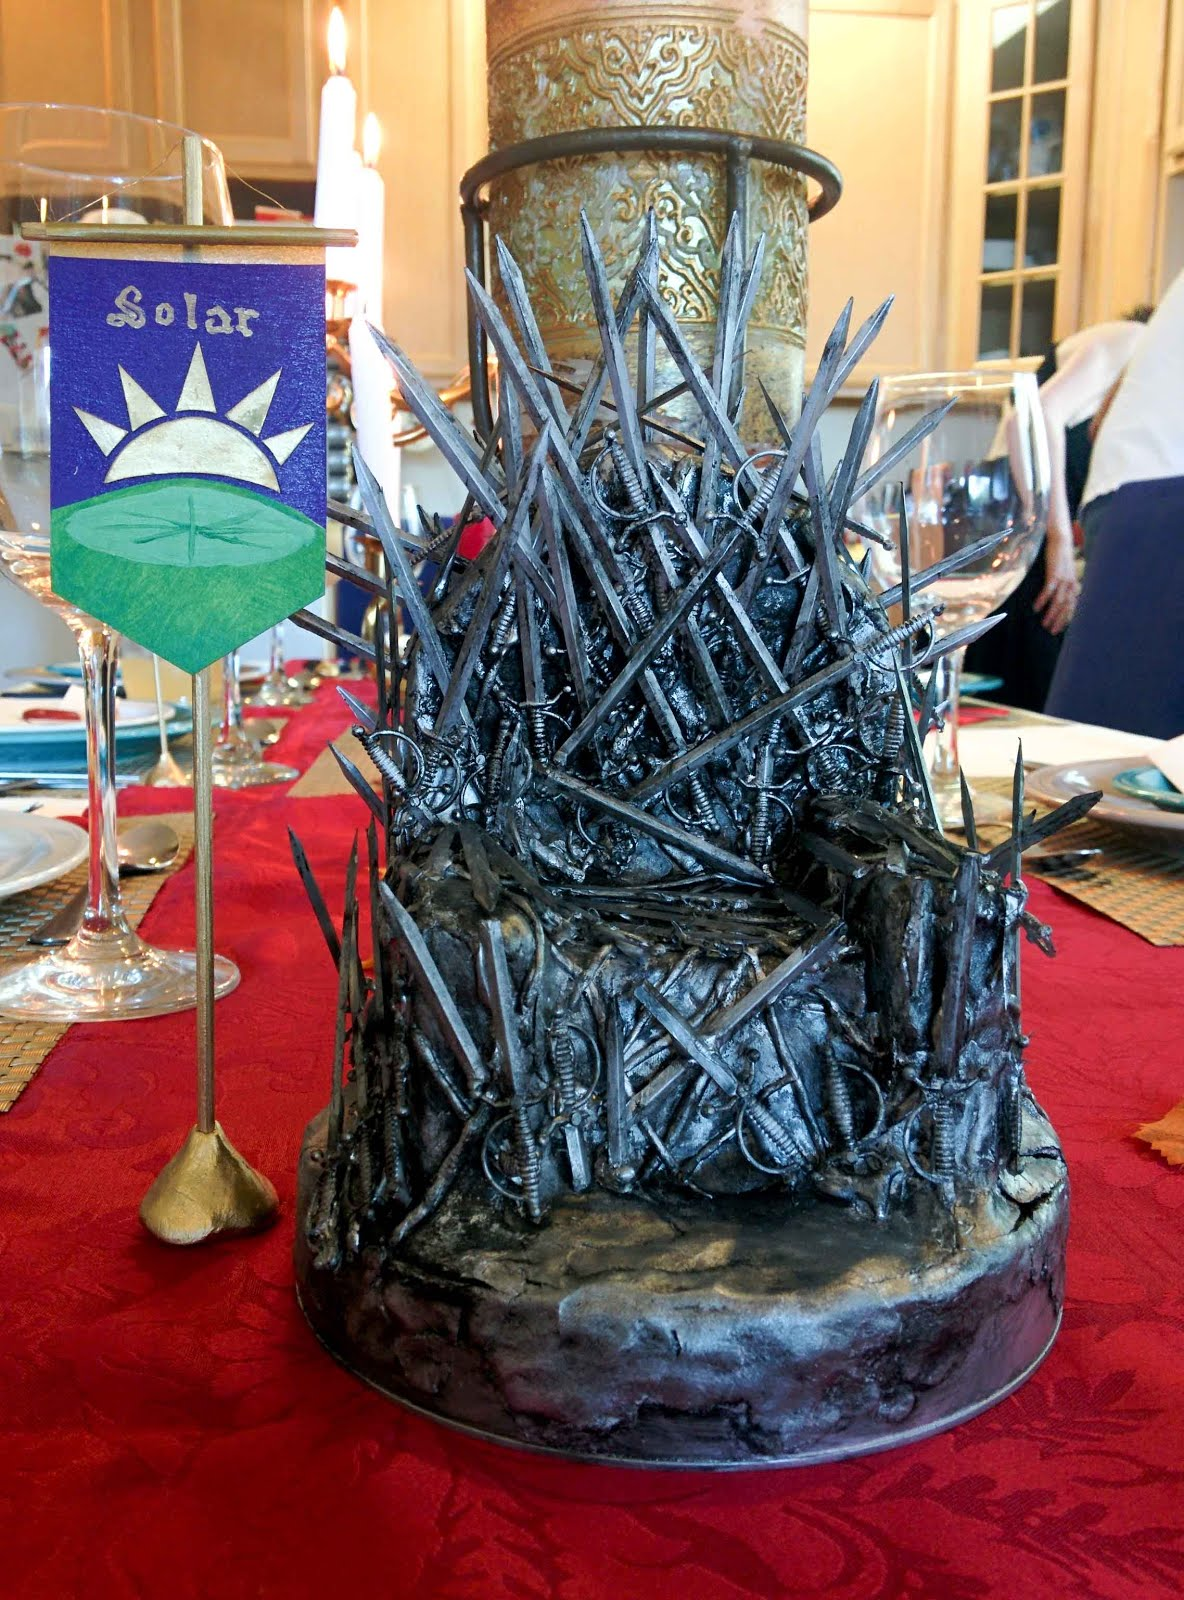 They say the Iron Throne can be perilous cruel to those who were not meant to sit it.